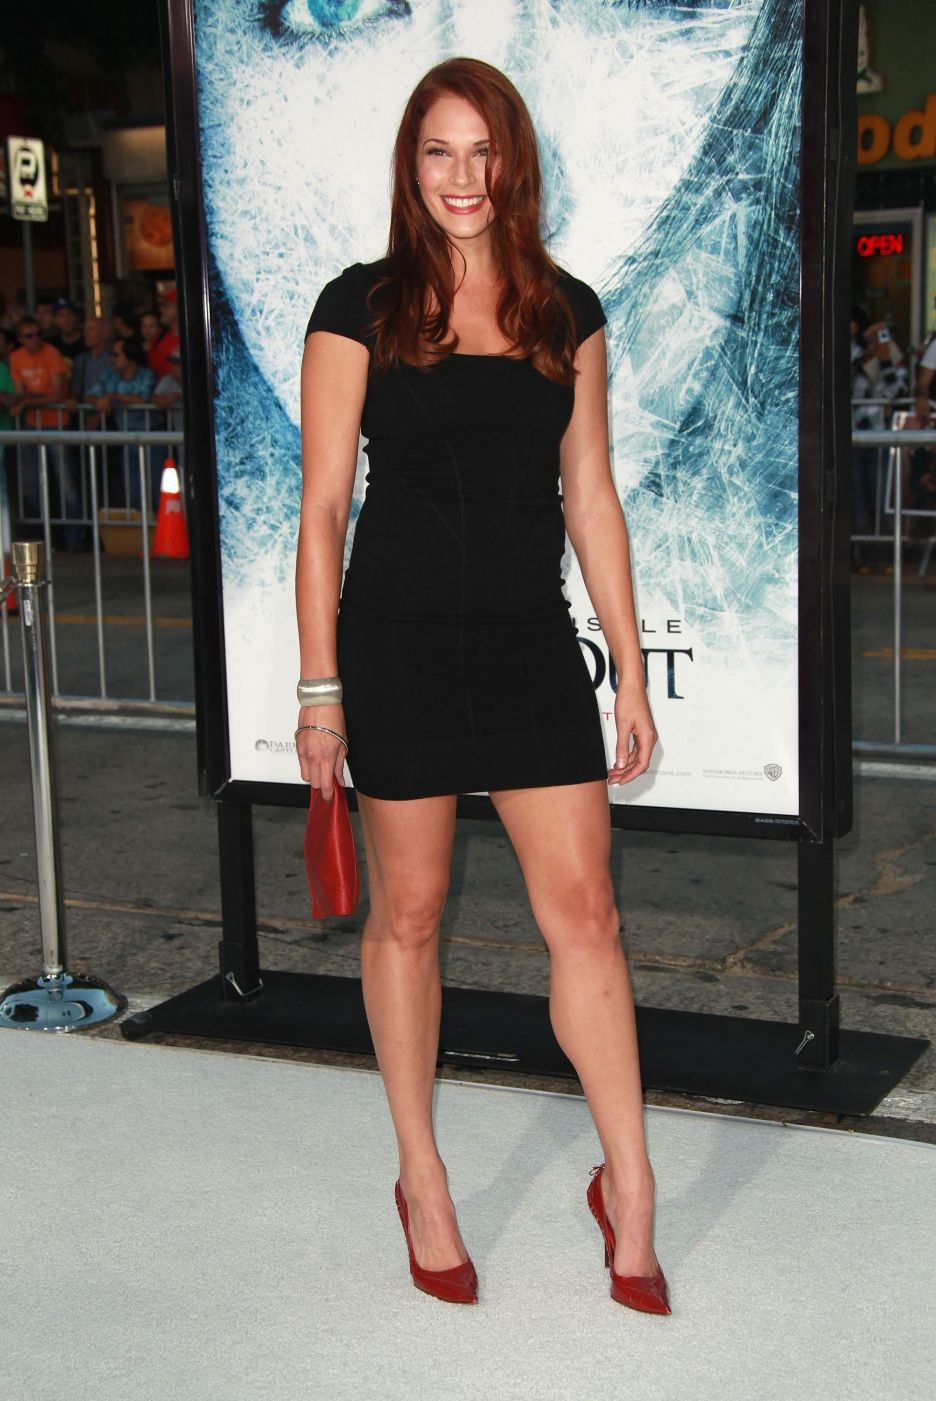 Amanda Righetti showing her fit body and nice legs in a little black dress.